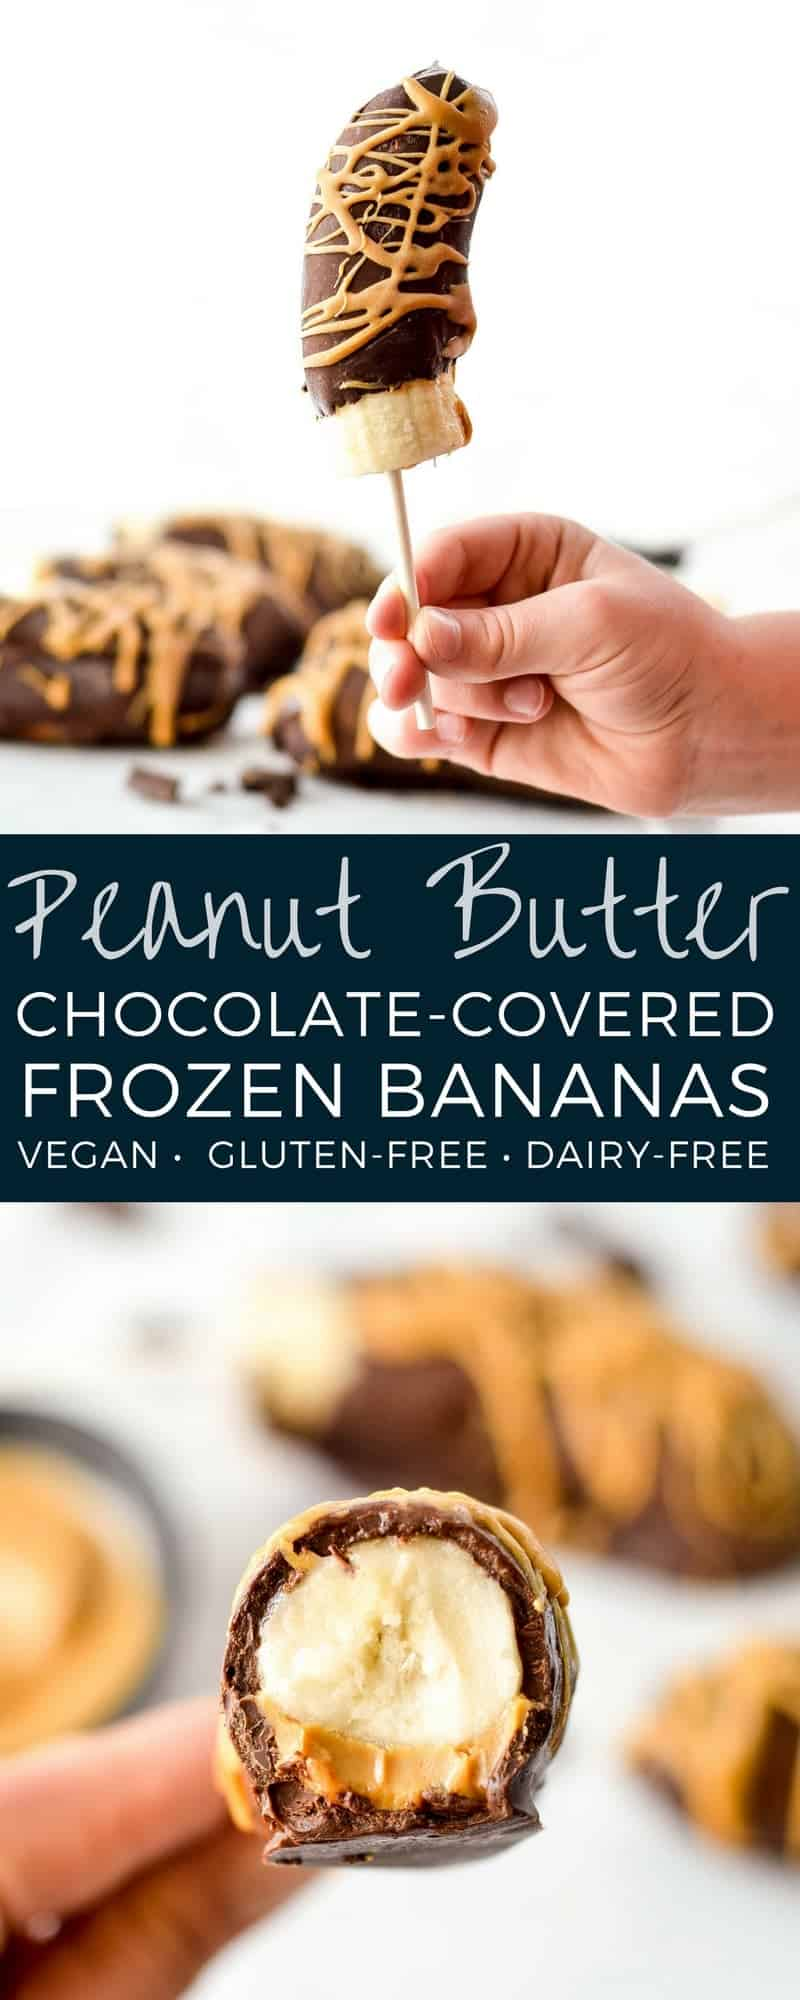 Frozen Chocolate Covered Bananas with Peanut Butter are an easy, 3 ingredient dessert! They are a perfect healthy treat for a hot summer day! Vegan, gluten-free and dairy-free! #frozen #chocolatecovered #bananas #healthy #recipe #glutenfree #dairyfree #vegan #peanutbutter #chocolate #dessert